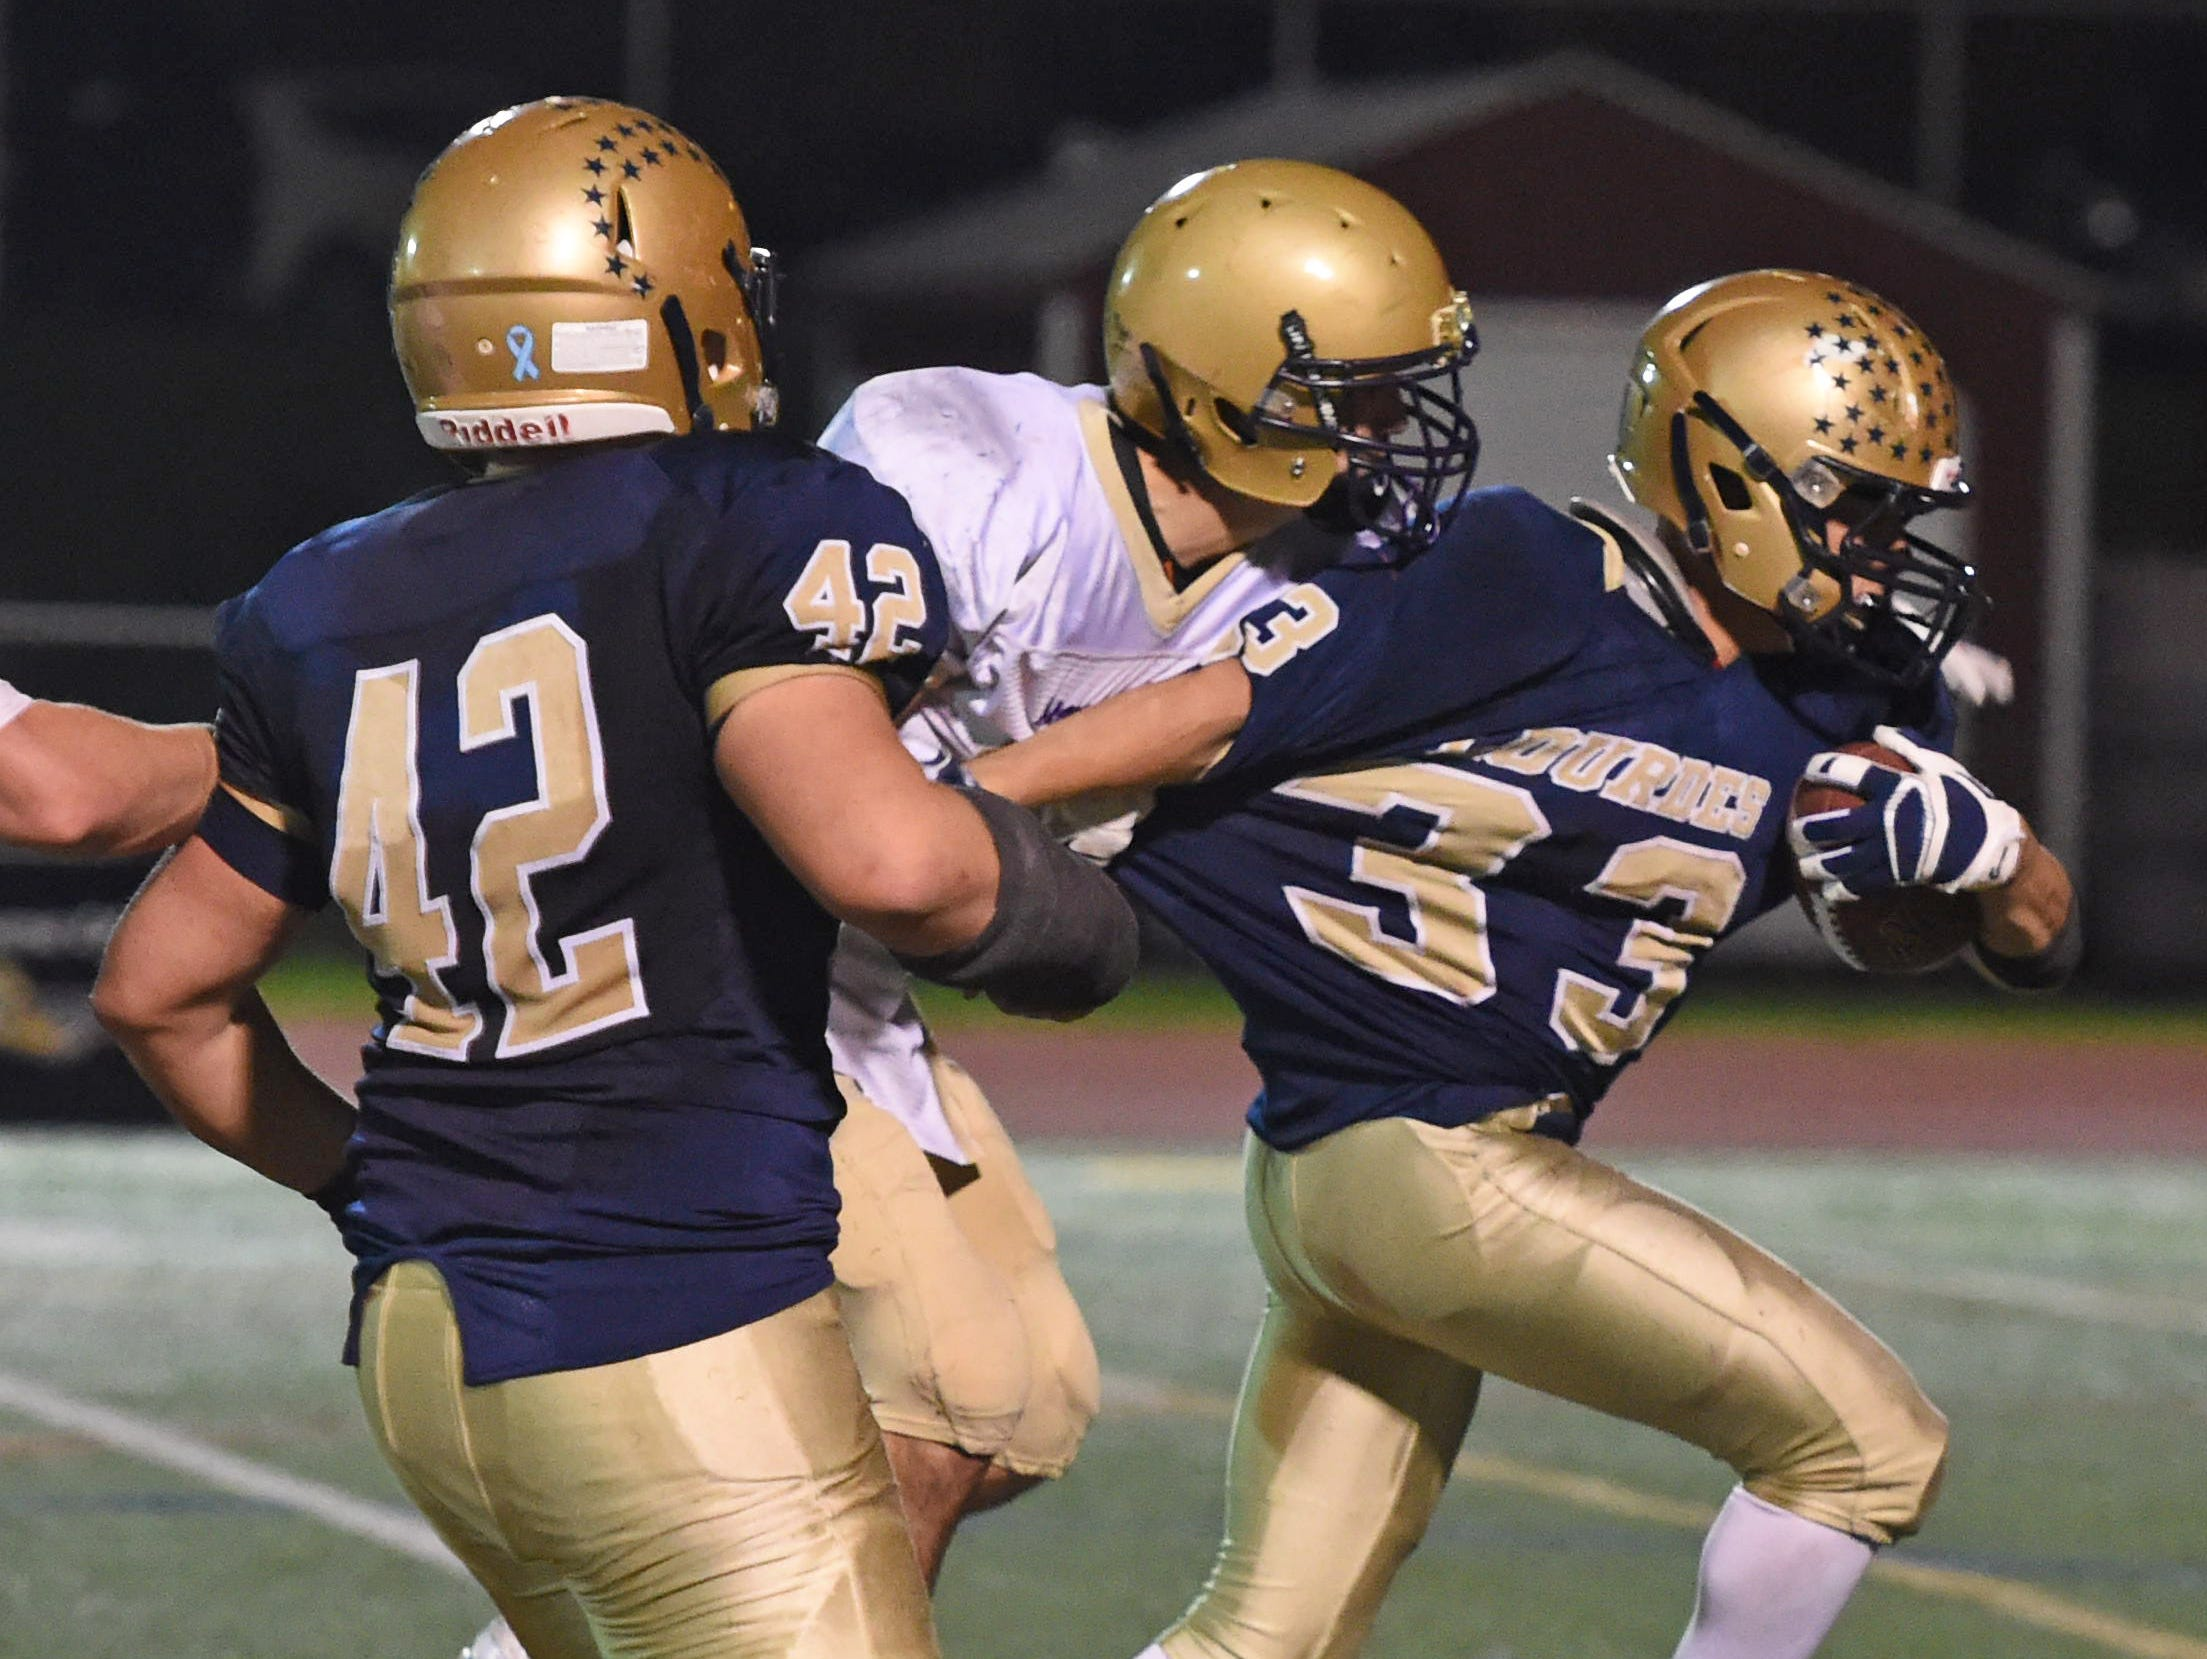 Action from the Class A semi final between Lourdes and Amsterdam at Dietz Stadium.